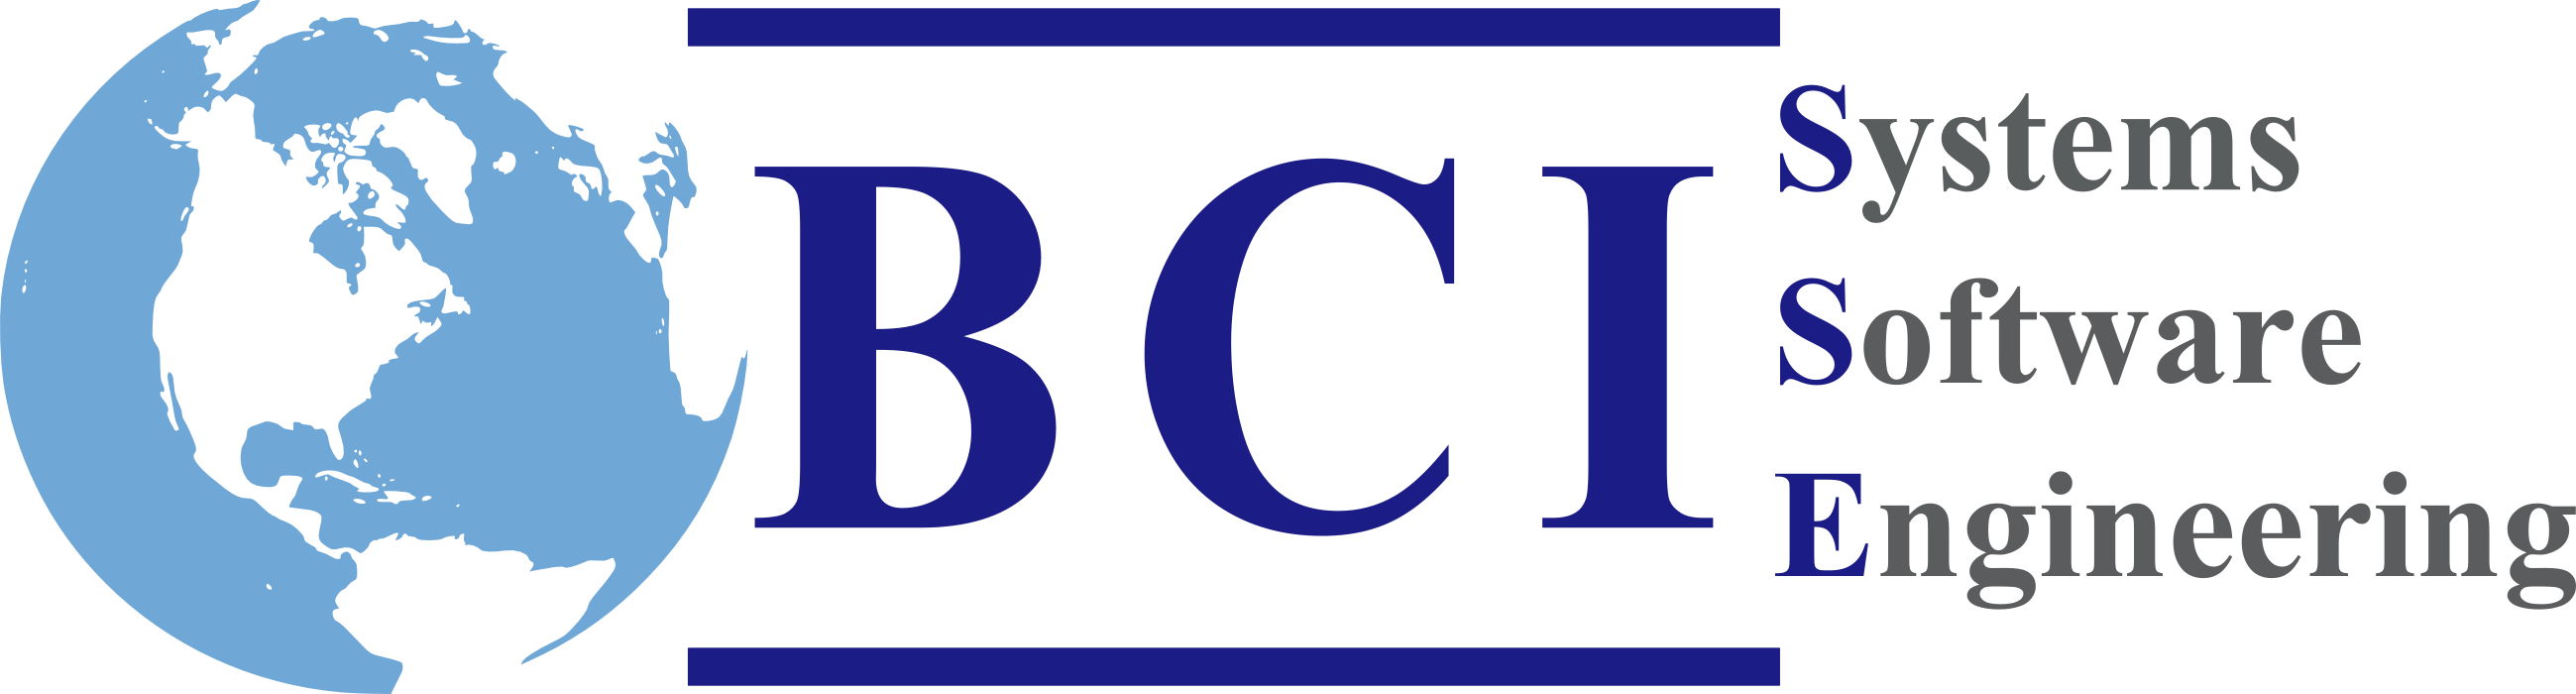 Basic Commerce Industries, Inc